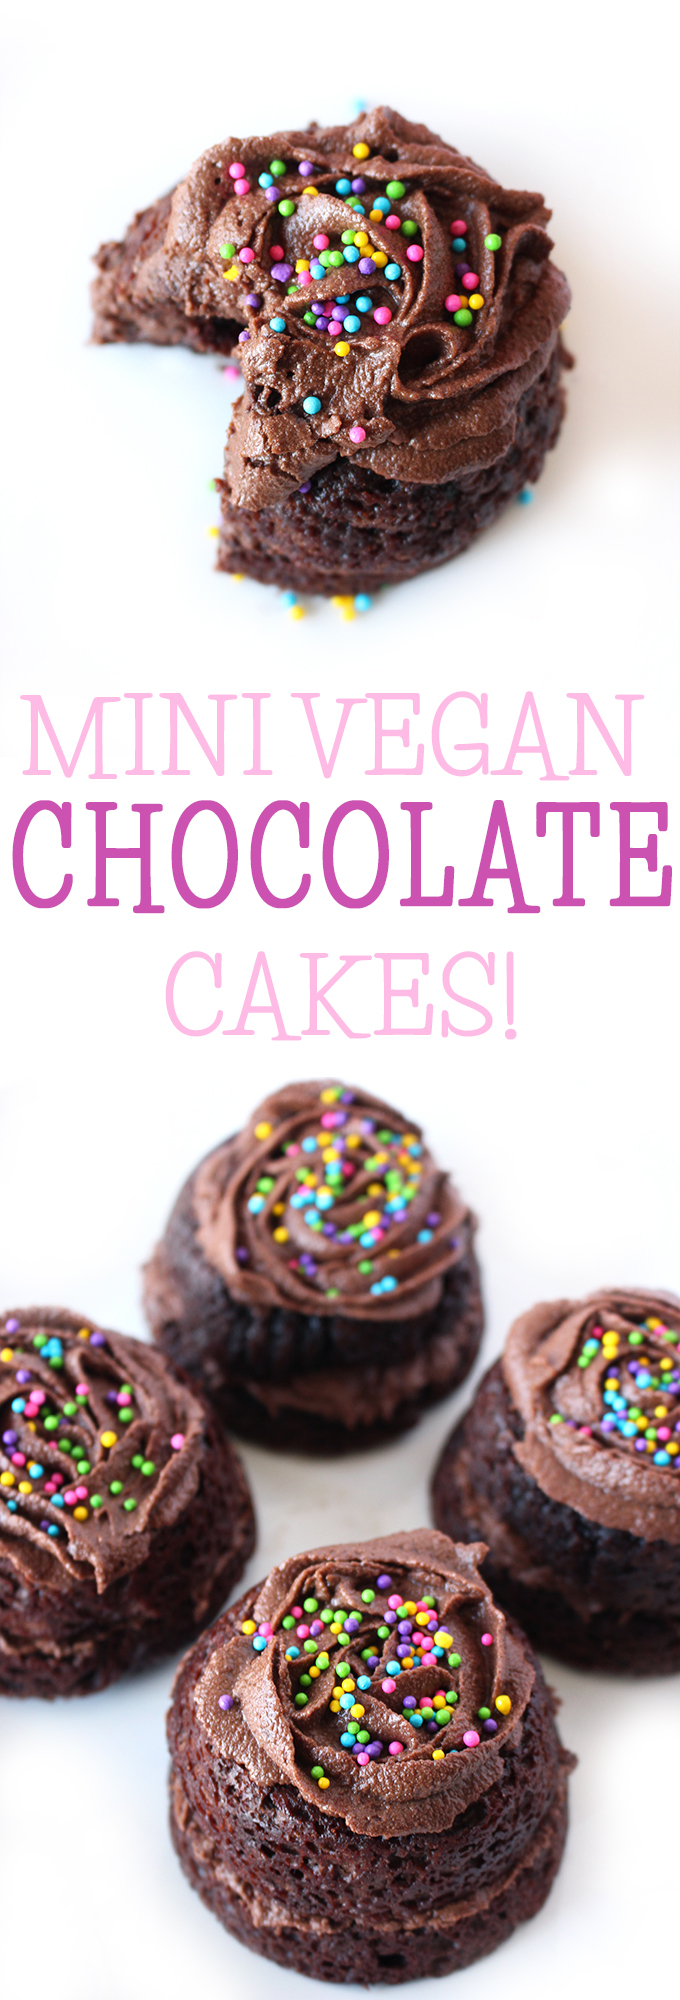 Mini Vegan Chocolate Cakes